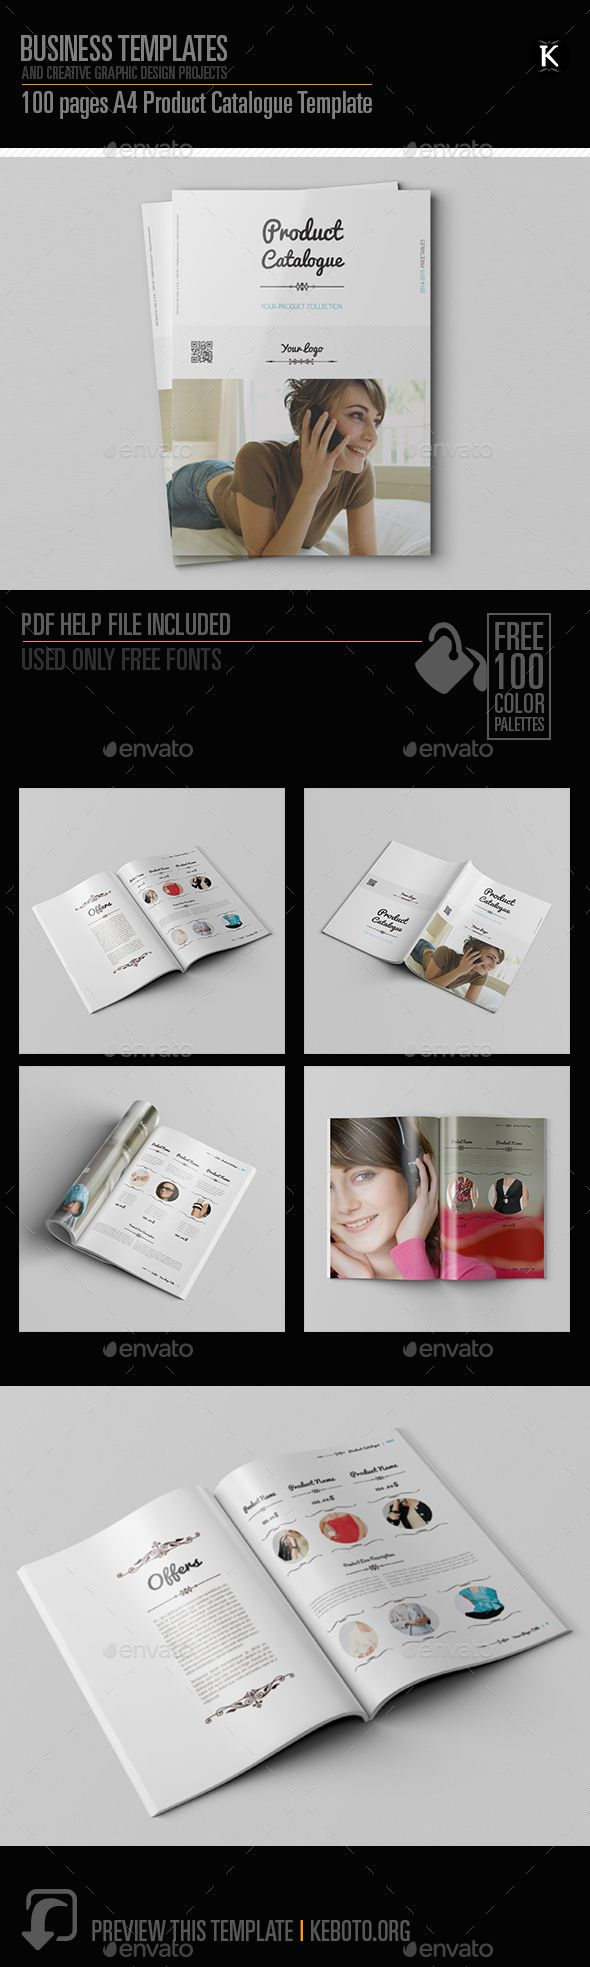 100 Pages A4 Product Catalogue Template | Pinterest